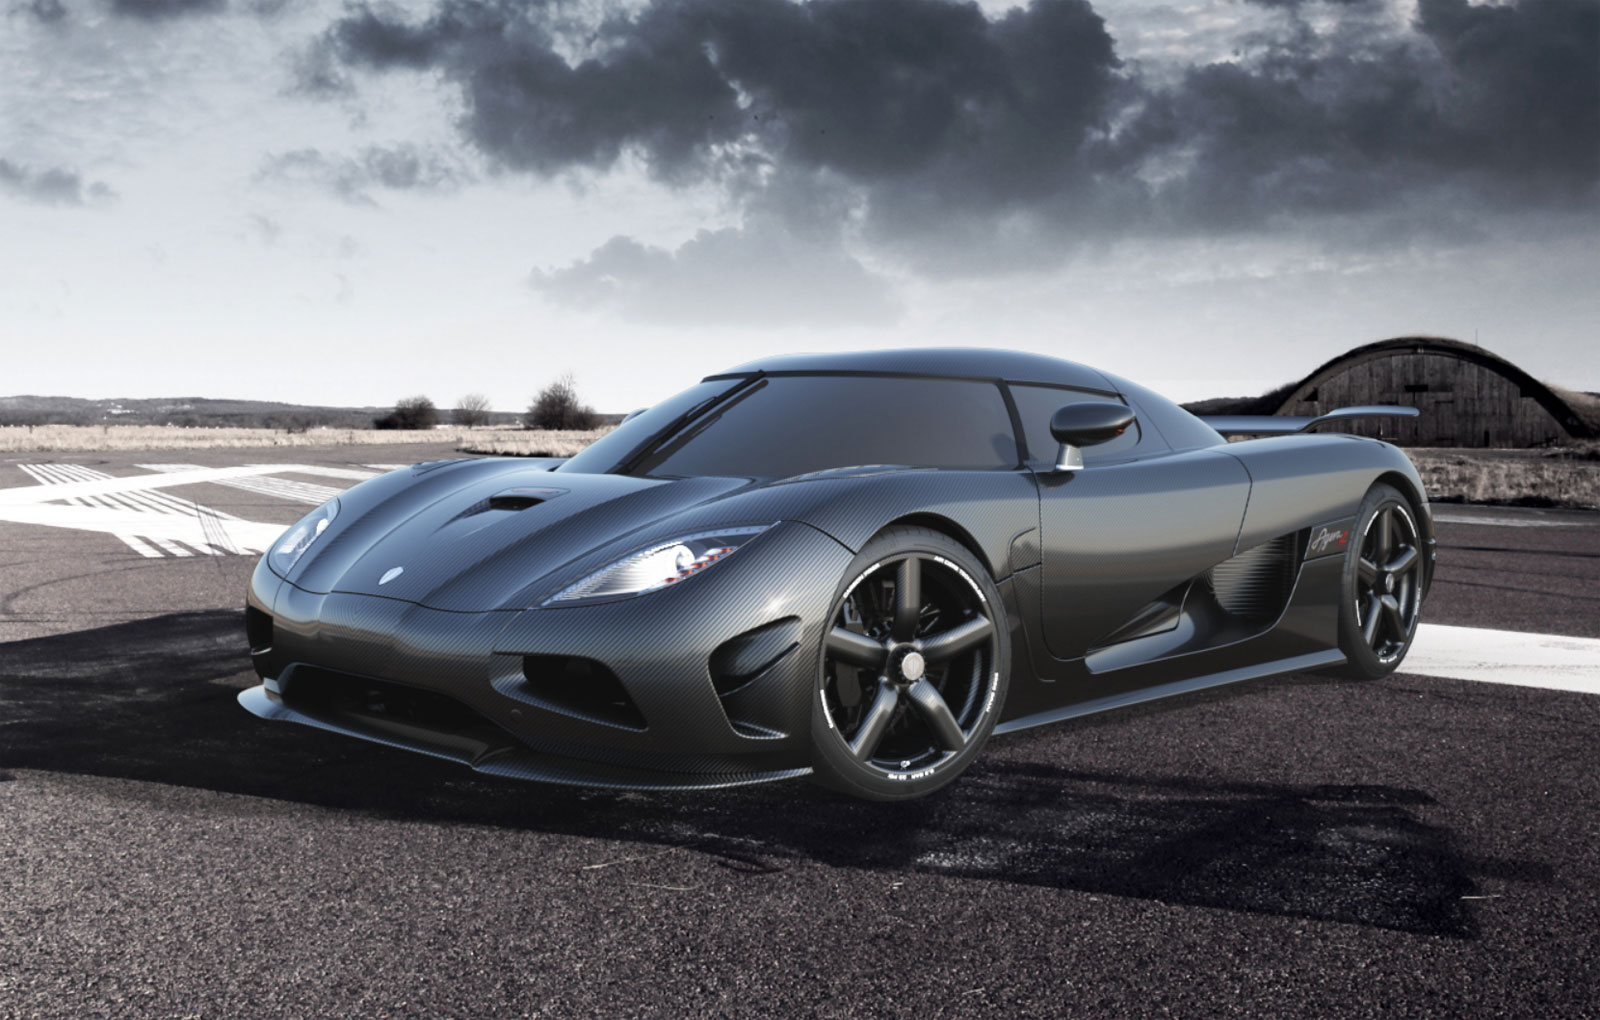 Sport Cars Koenigsegg Agera R hd Wallpapers 2013 1600x1020